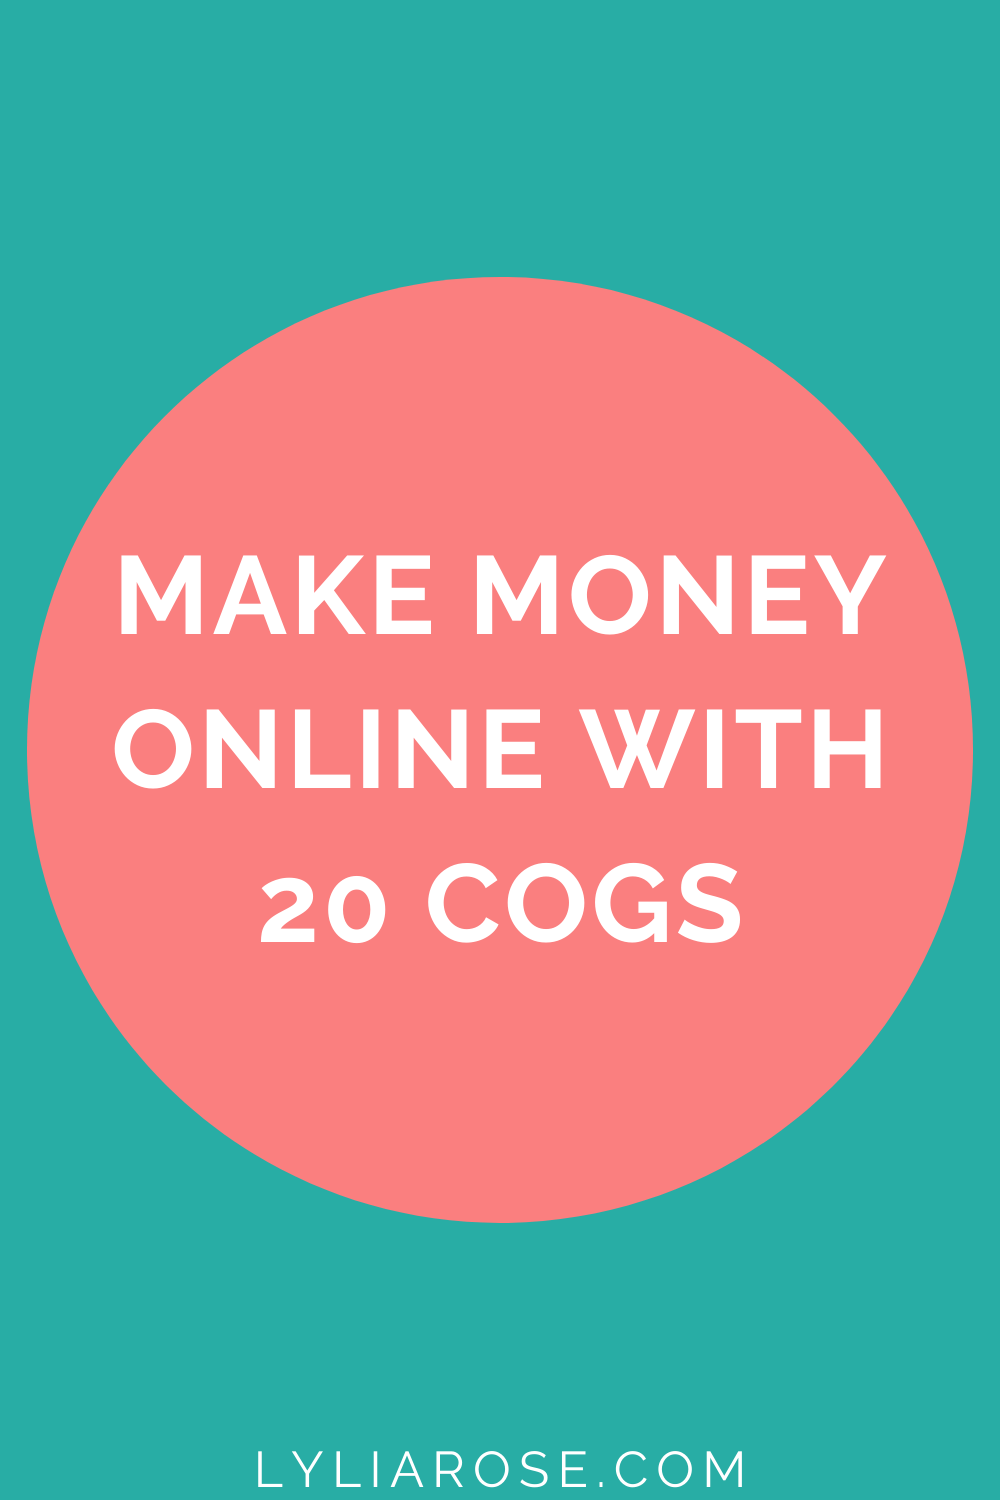 Make money online with 20 Cogs